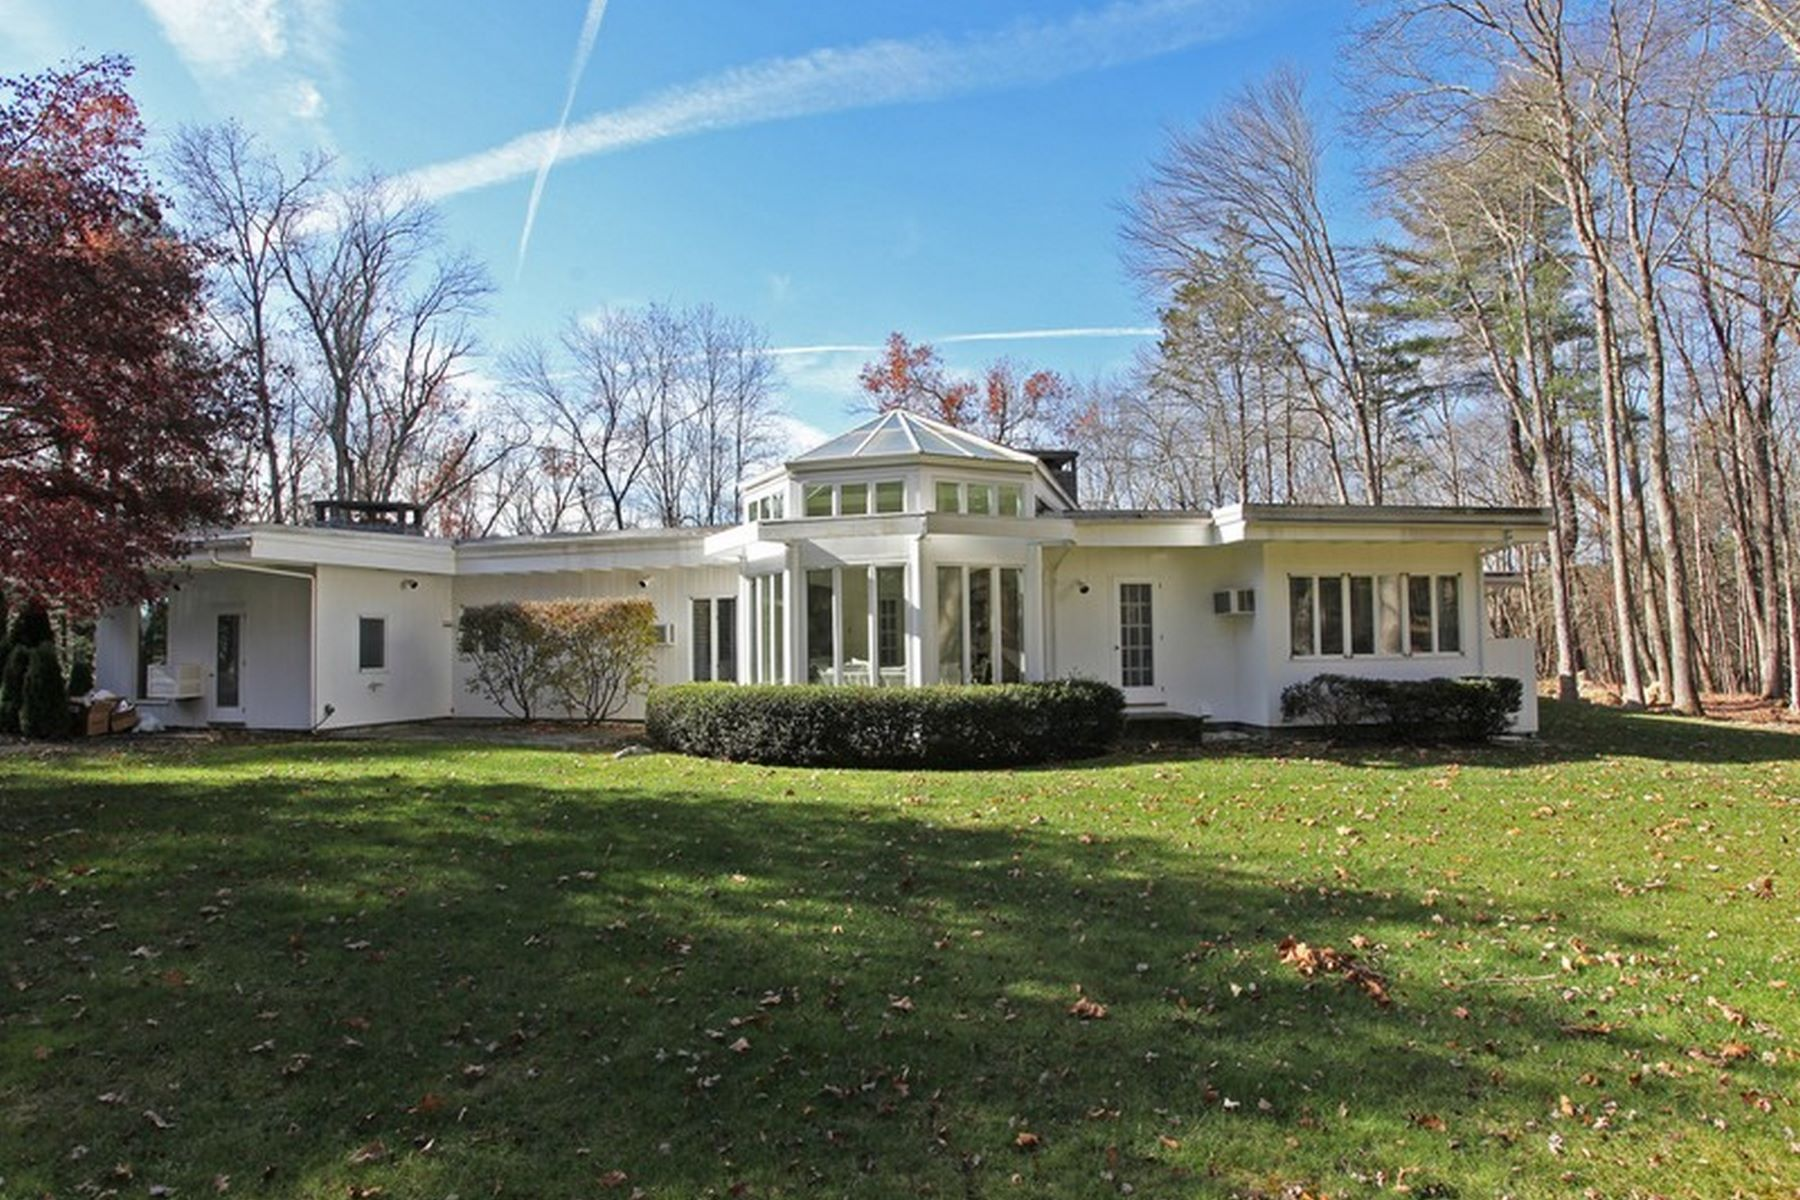 Single Family Home for Rent at Sleek Mid-Century Modern 116 Wellers Bridge Road Roxbury, Connecticut 06783 United States